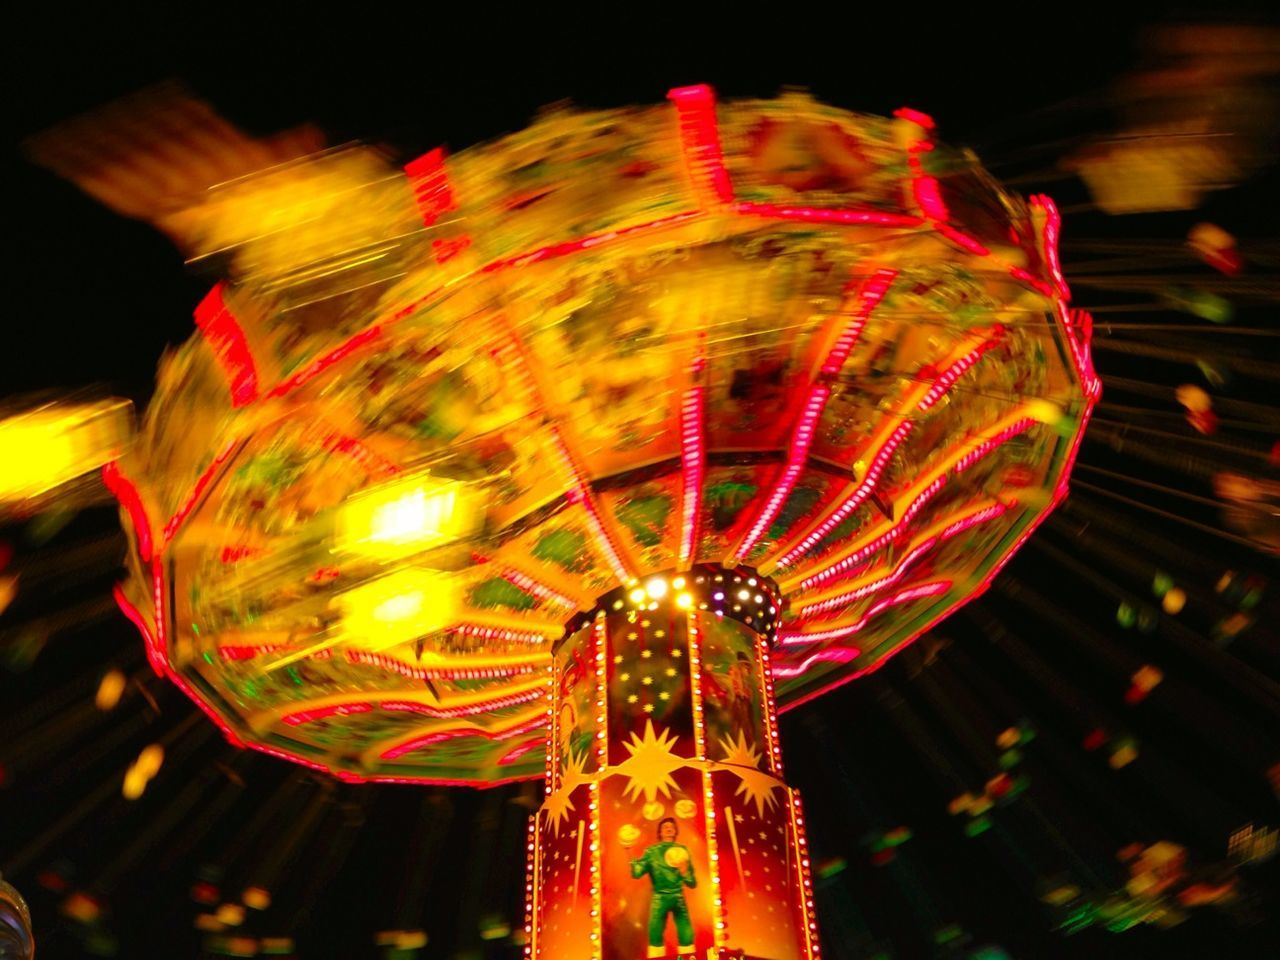 Blurred motion of illuminated chain swing ride at night